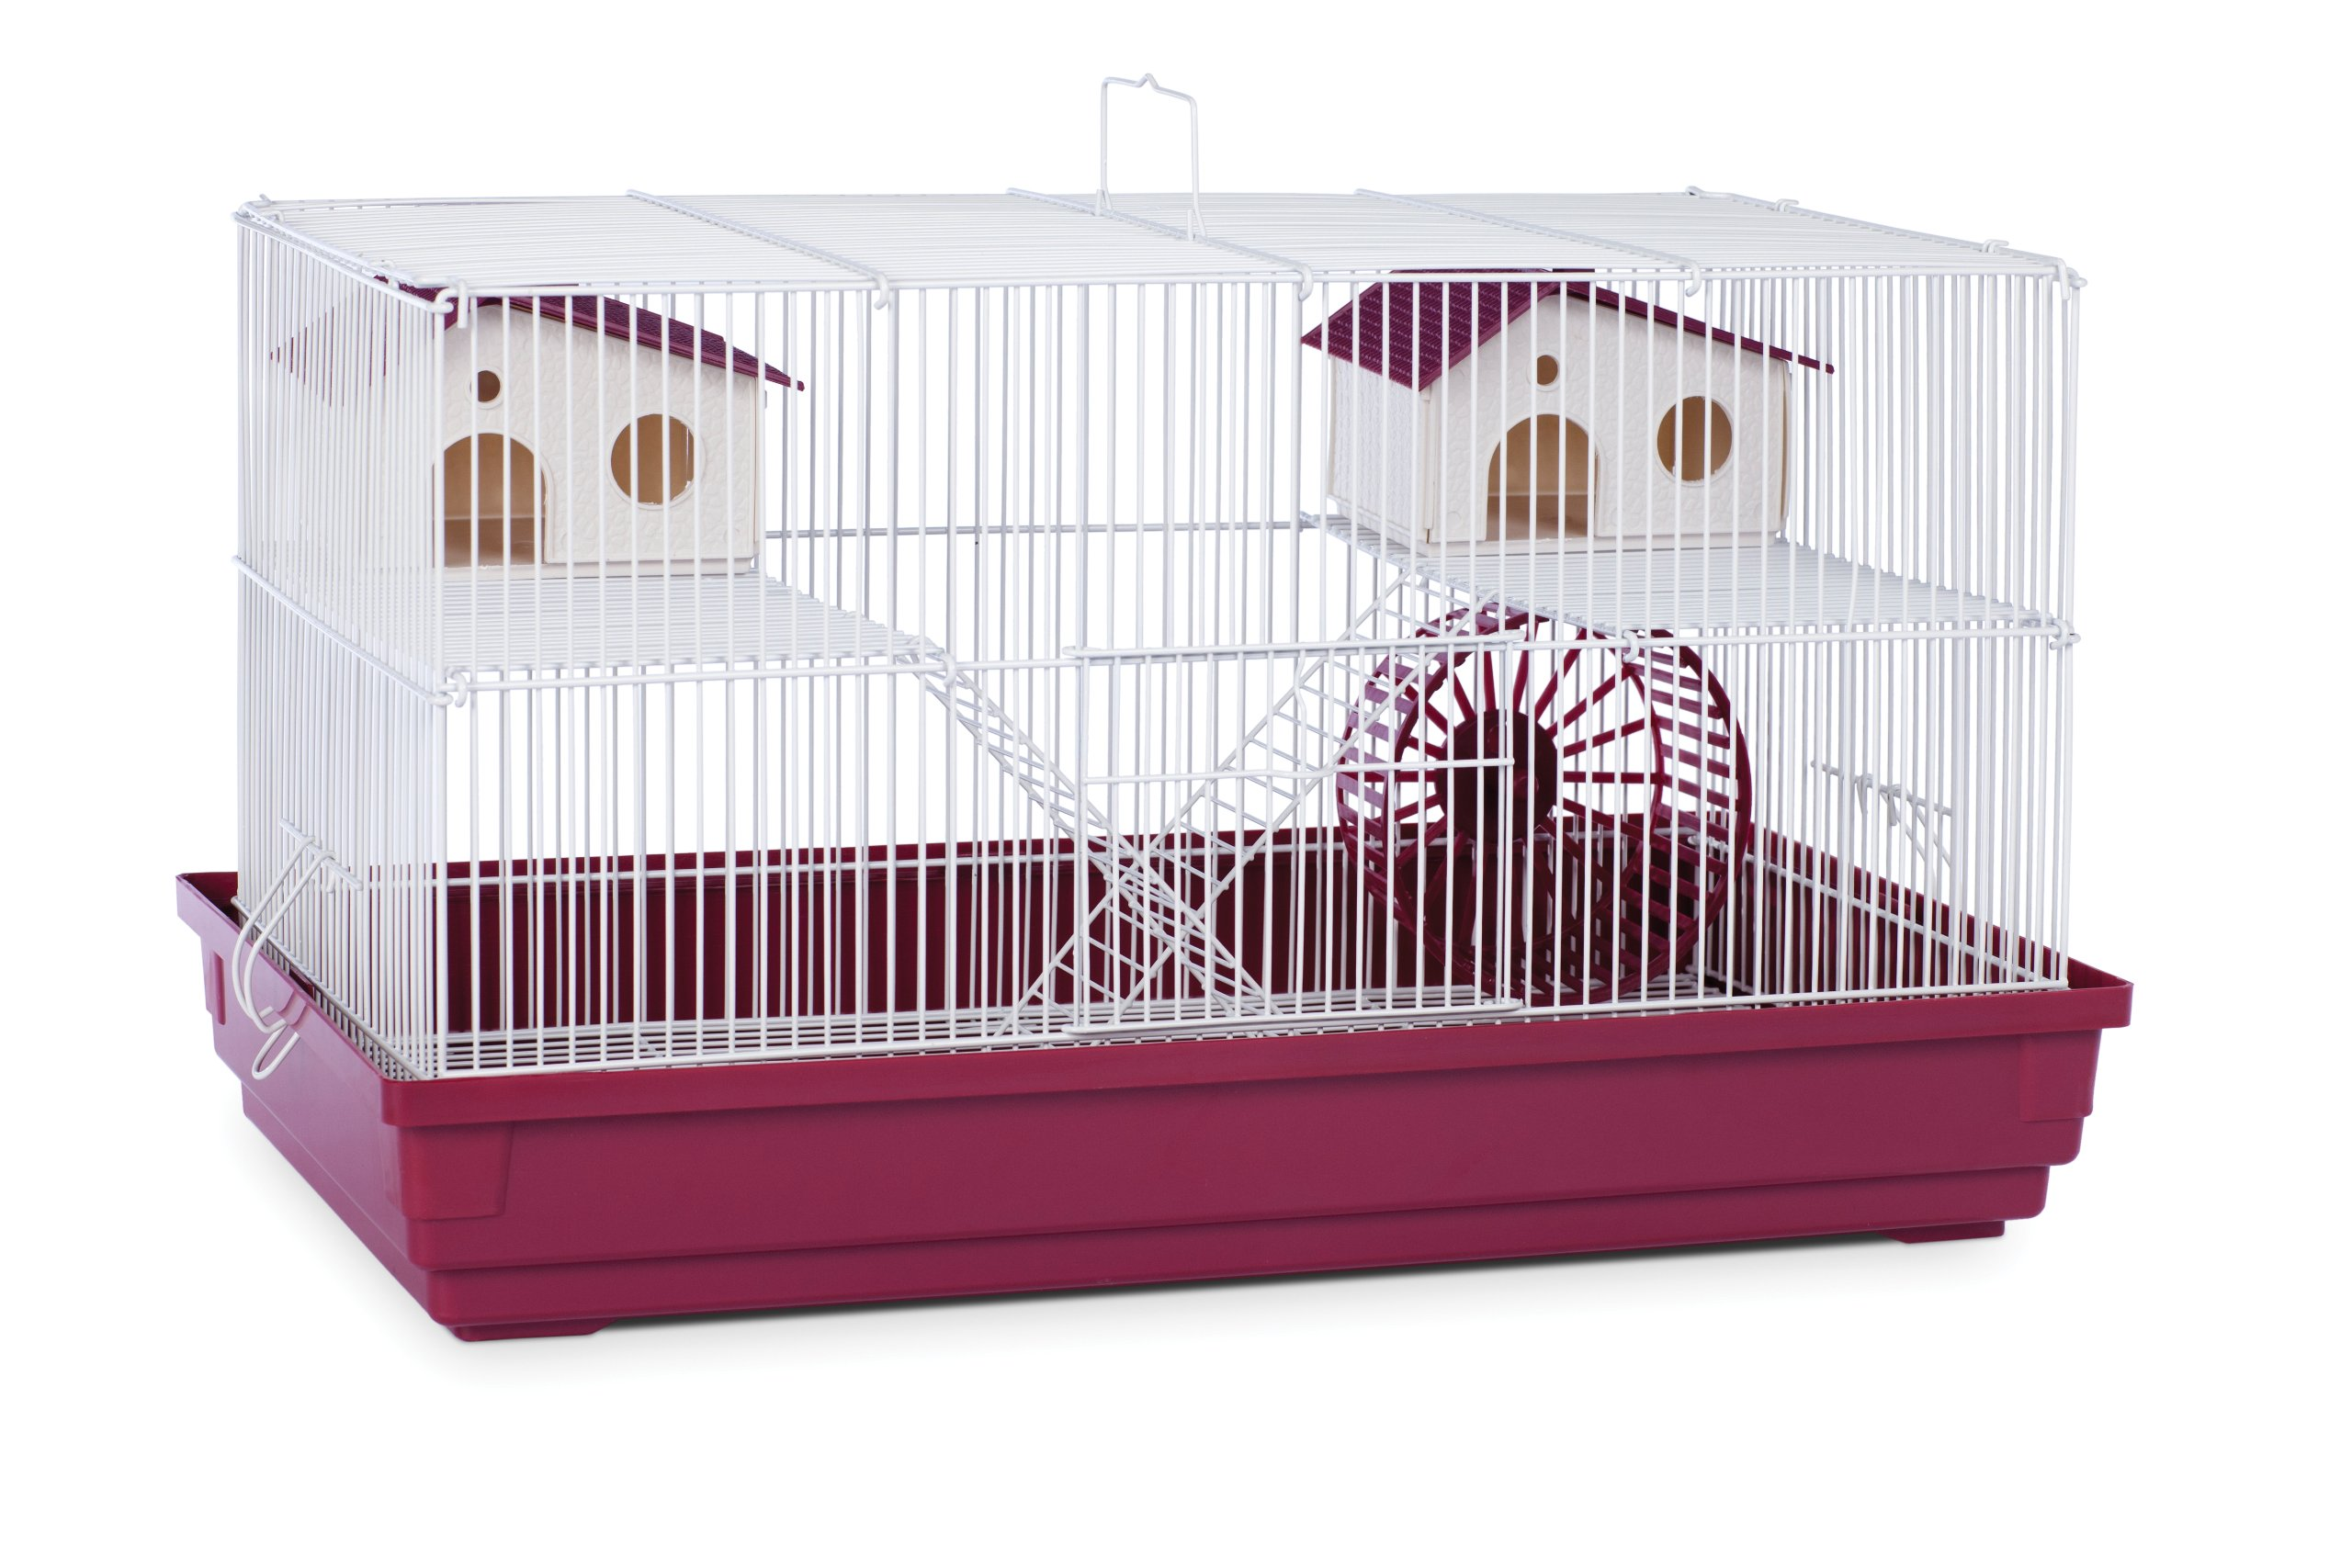 Prevue Hendryx SP2060R Deluxe Hamster and Gerbil Cage, Bordeaux Red by Prevue Hendryx